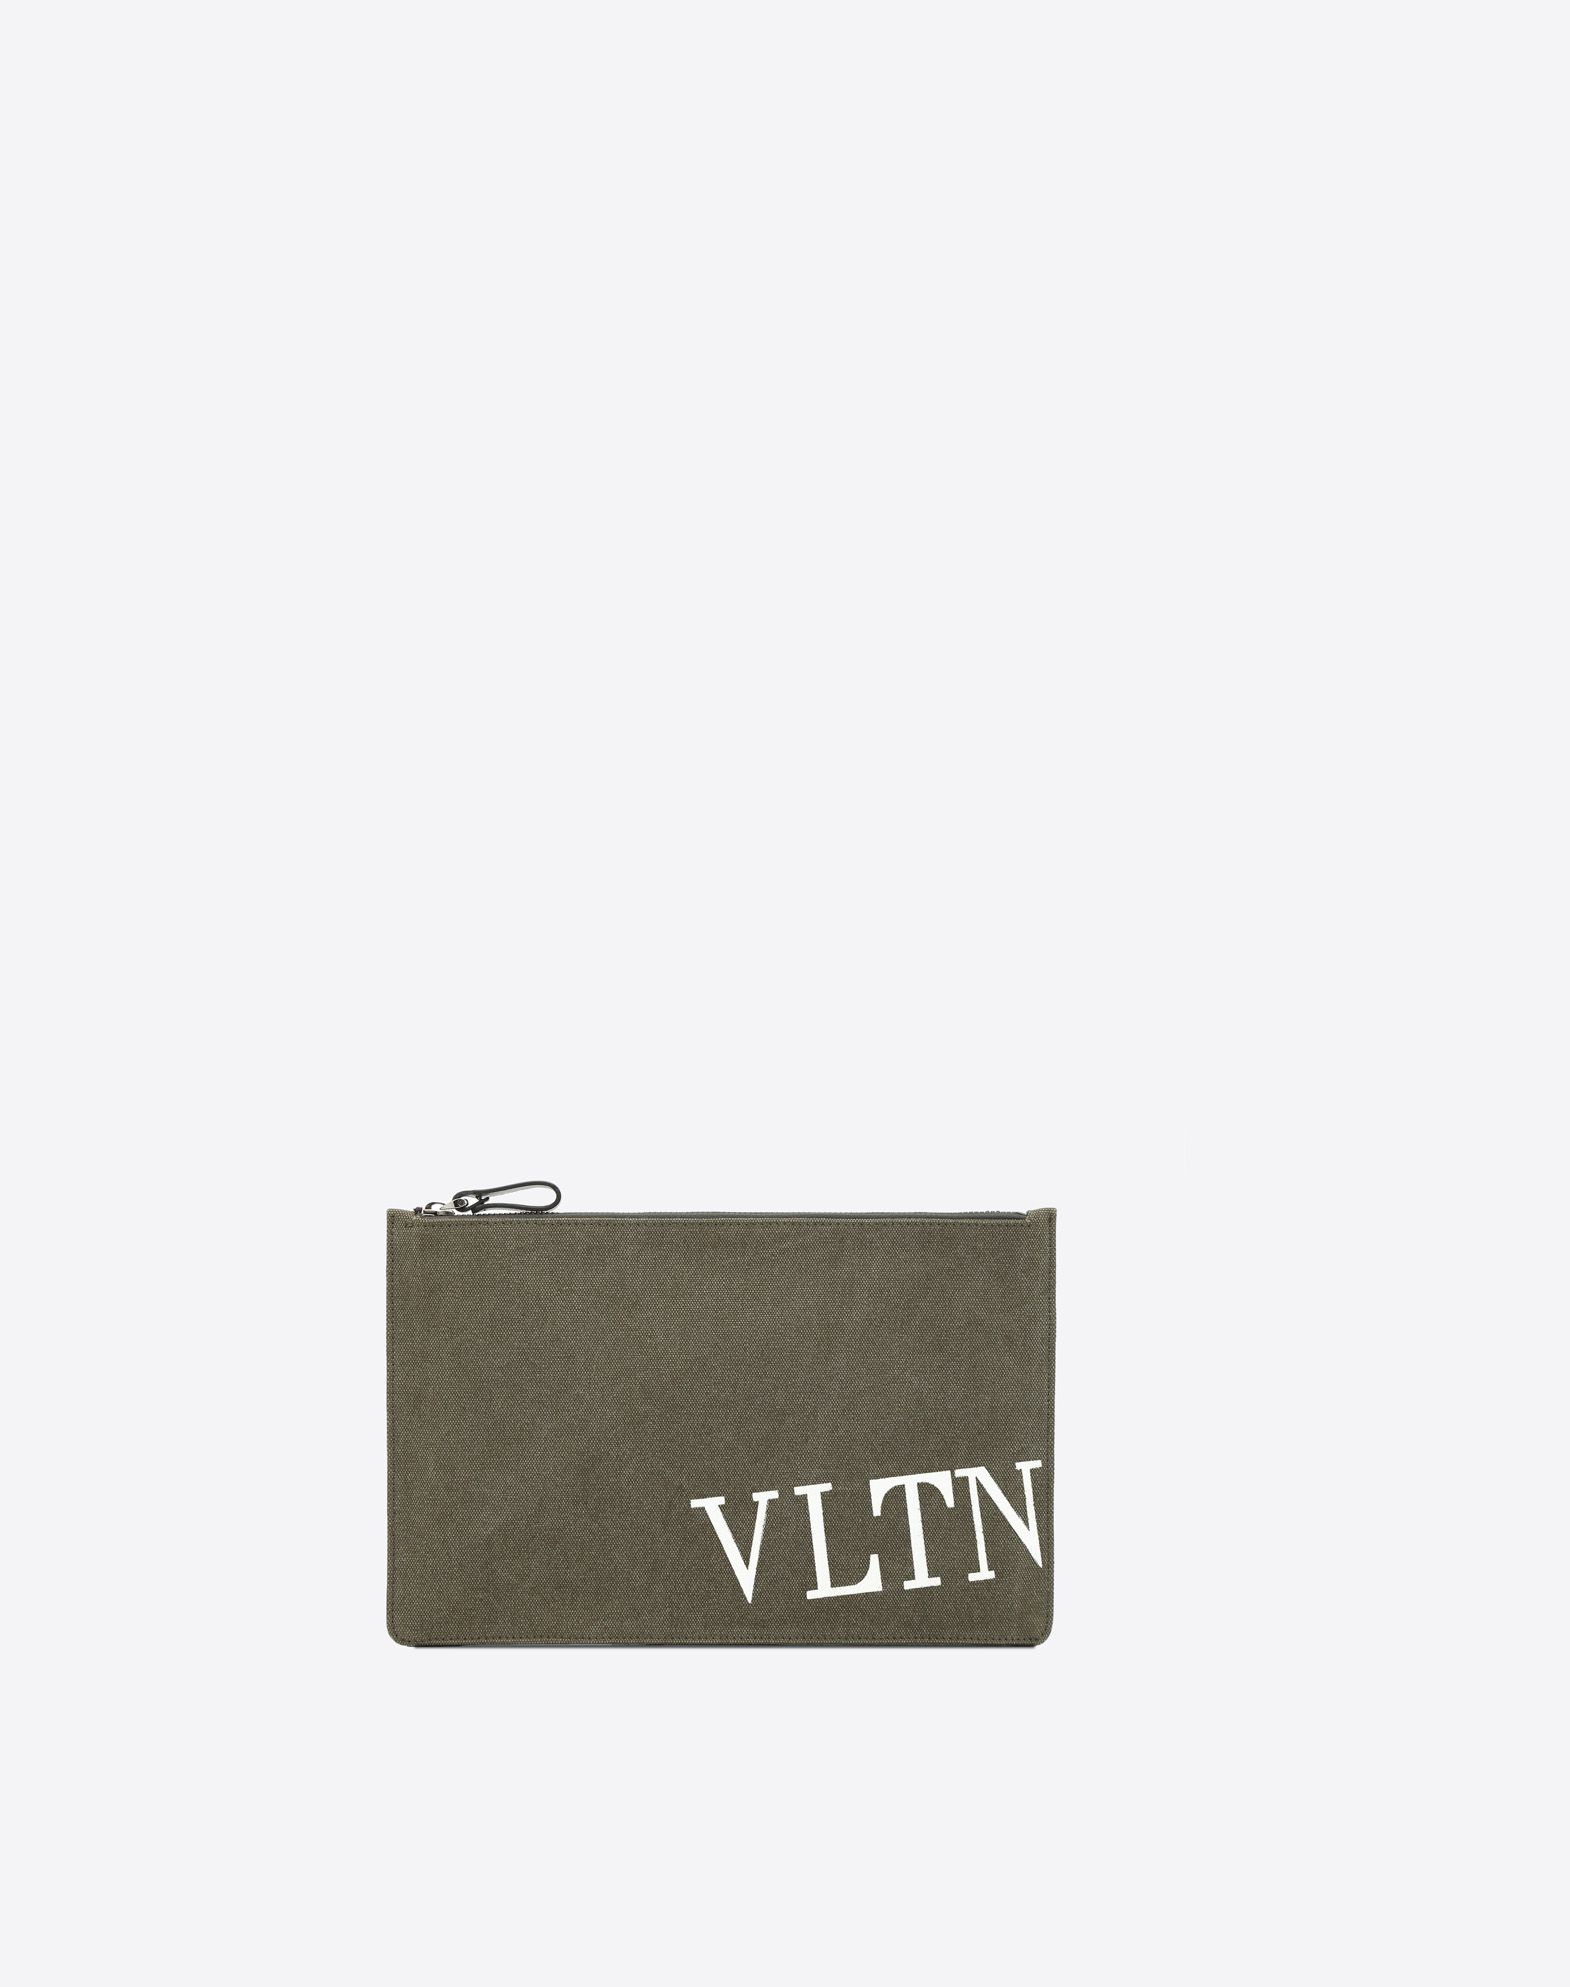 VALENTINO Logo Solid color Print Zip Internal pocket Canvas  46576678ca